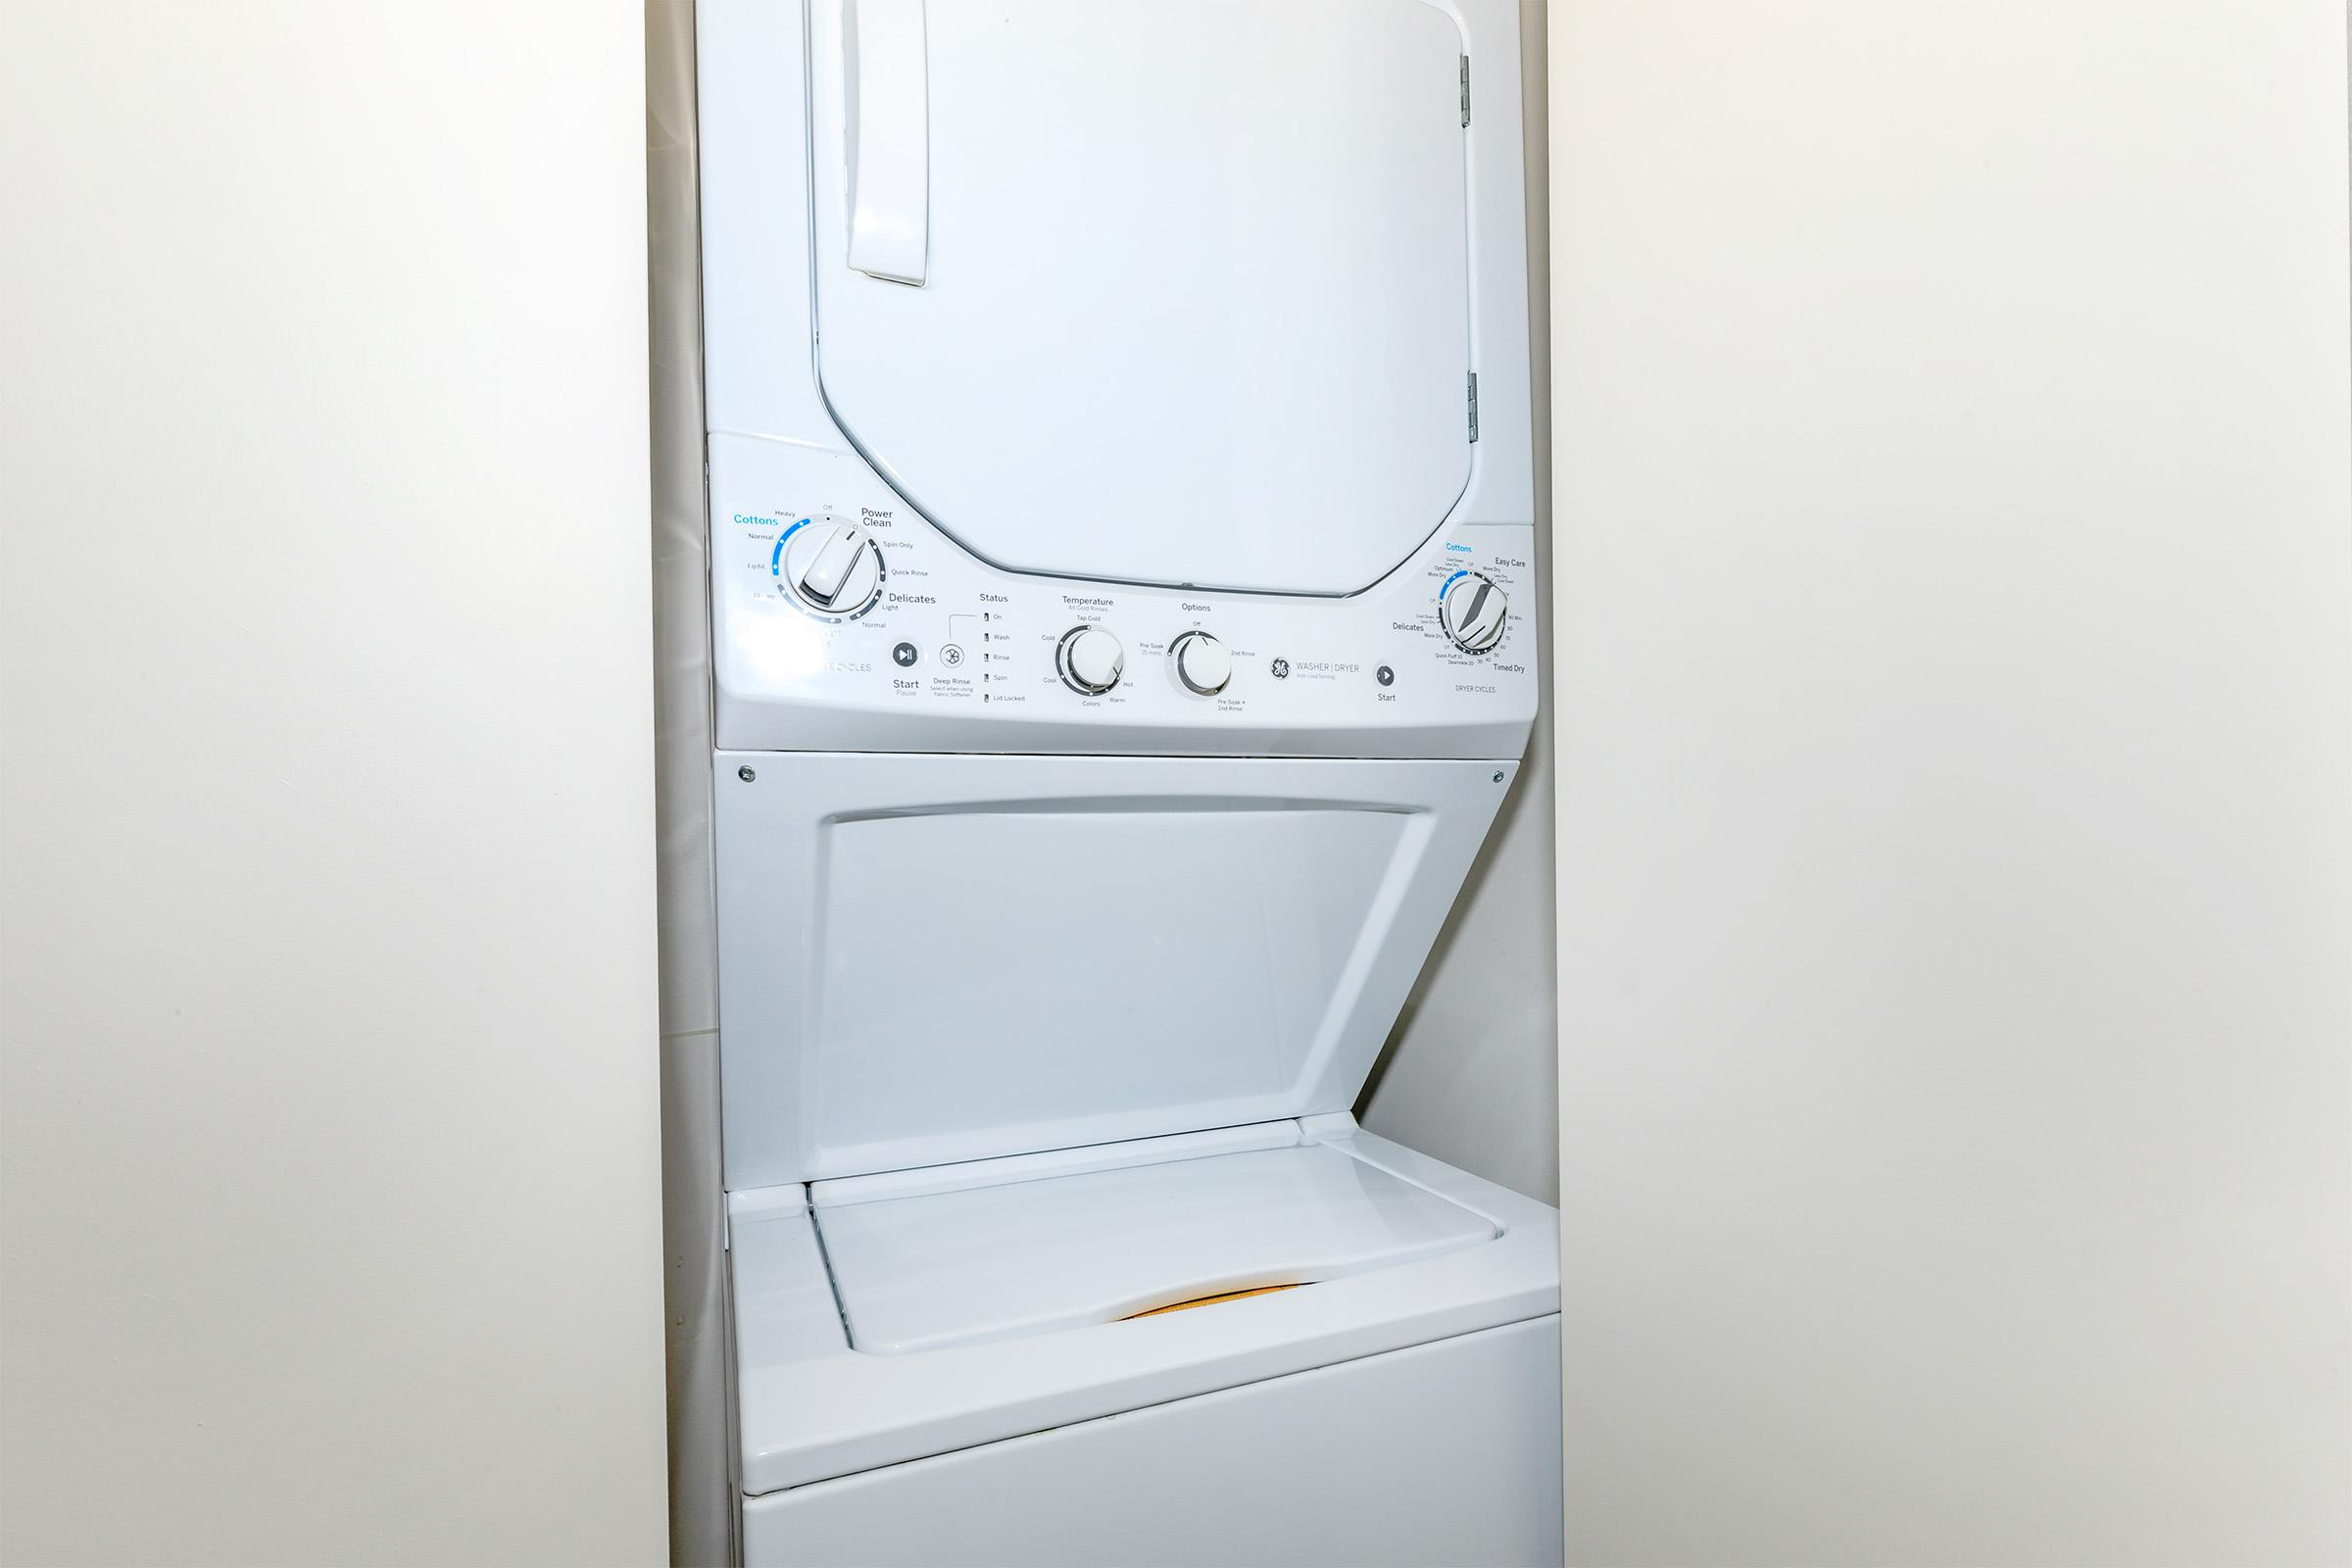 a microwave oven sitting on top of a refrigerator